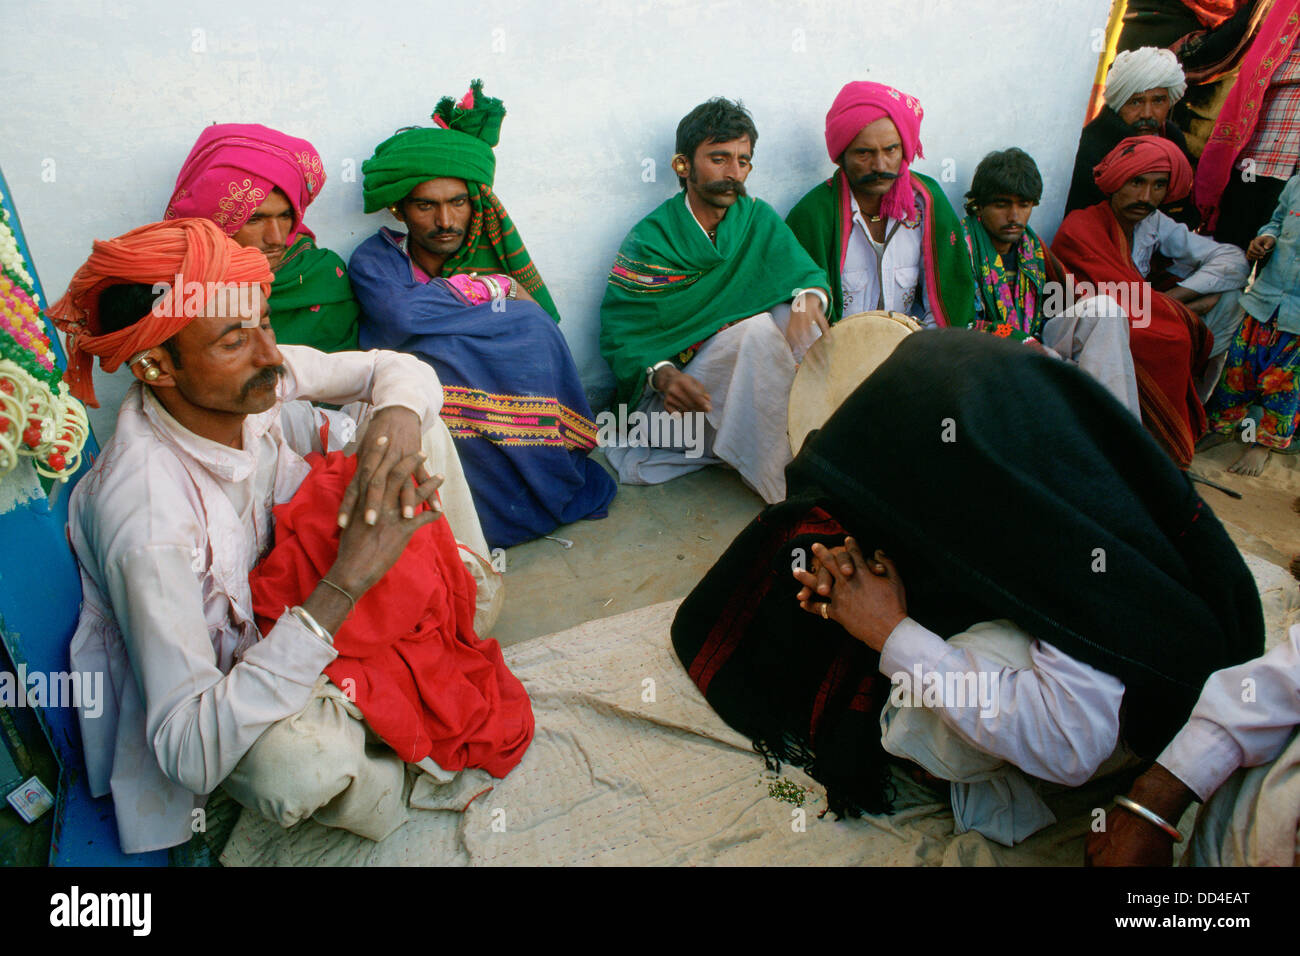 Propitiatory ritual performed by a traditional healer ( the man under the blanket) among the Rabari caste ( India) - Stock Image